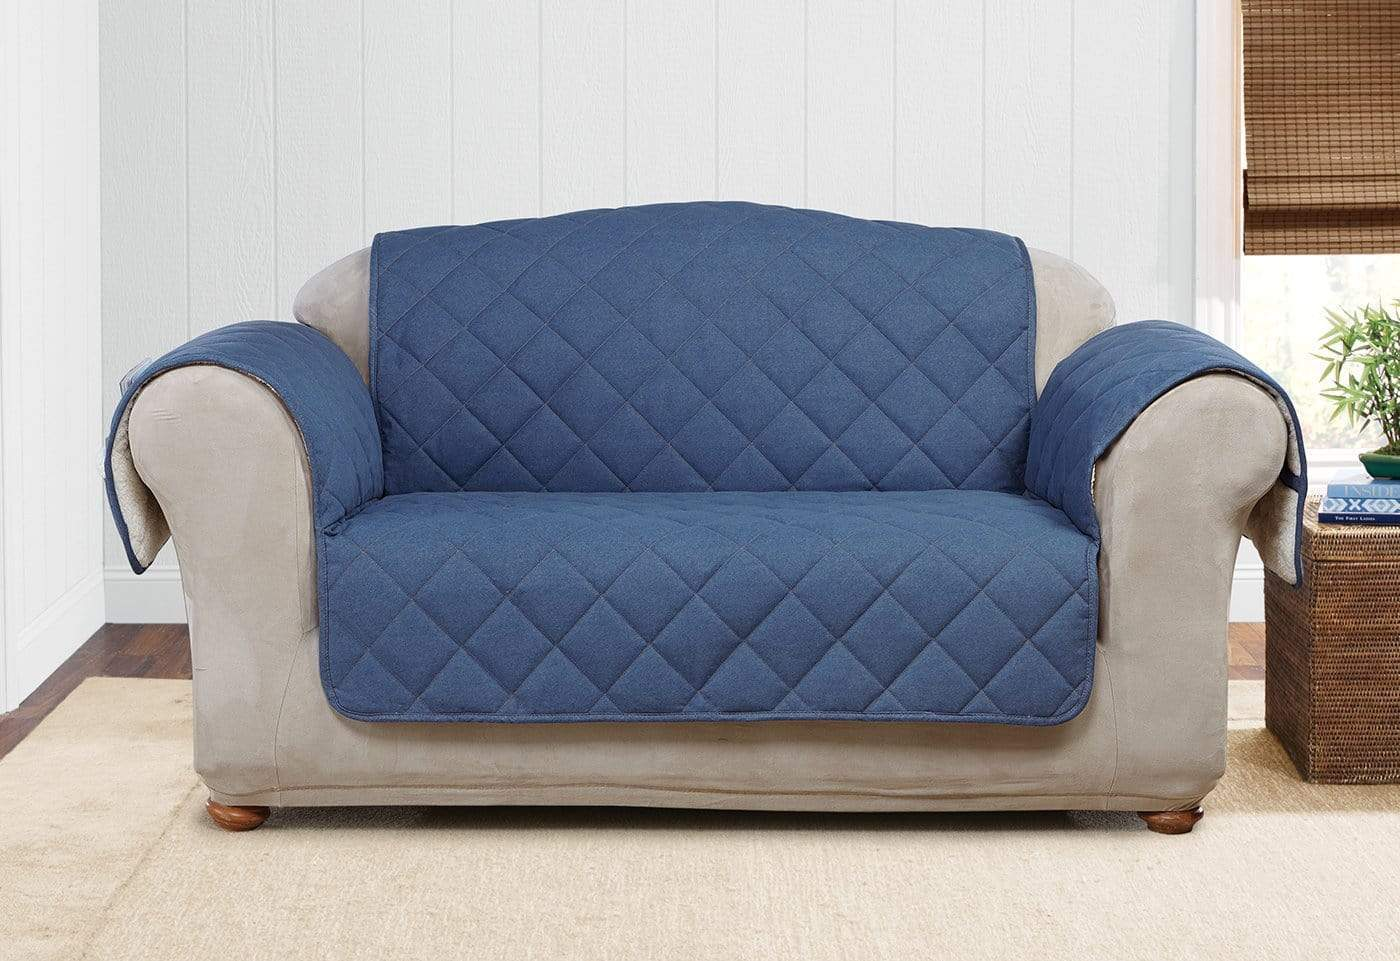 Denim & Sherpa Loveseat Furniture Cover 100% Polyester Pet Furniture Cover Machine Washable - Loveseat / Indigo